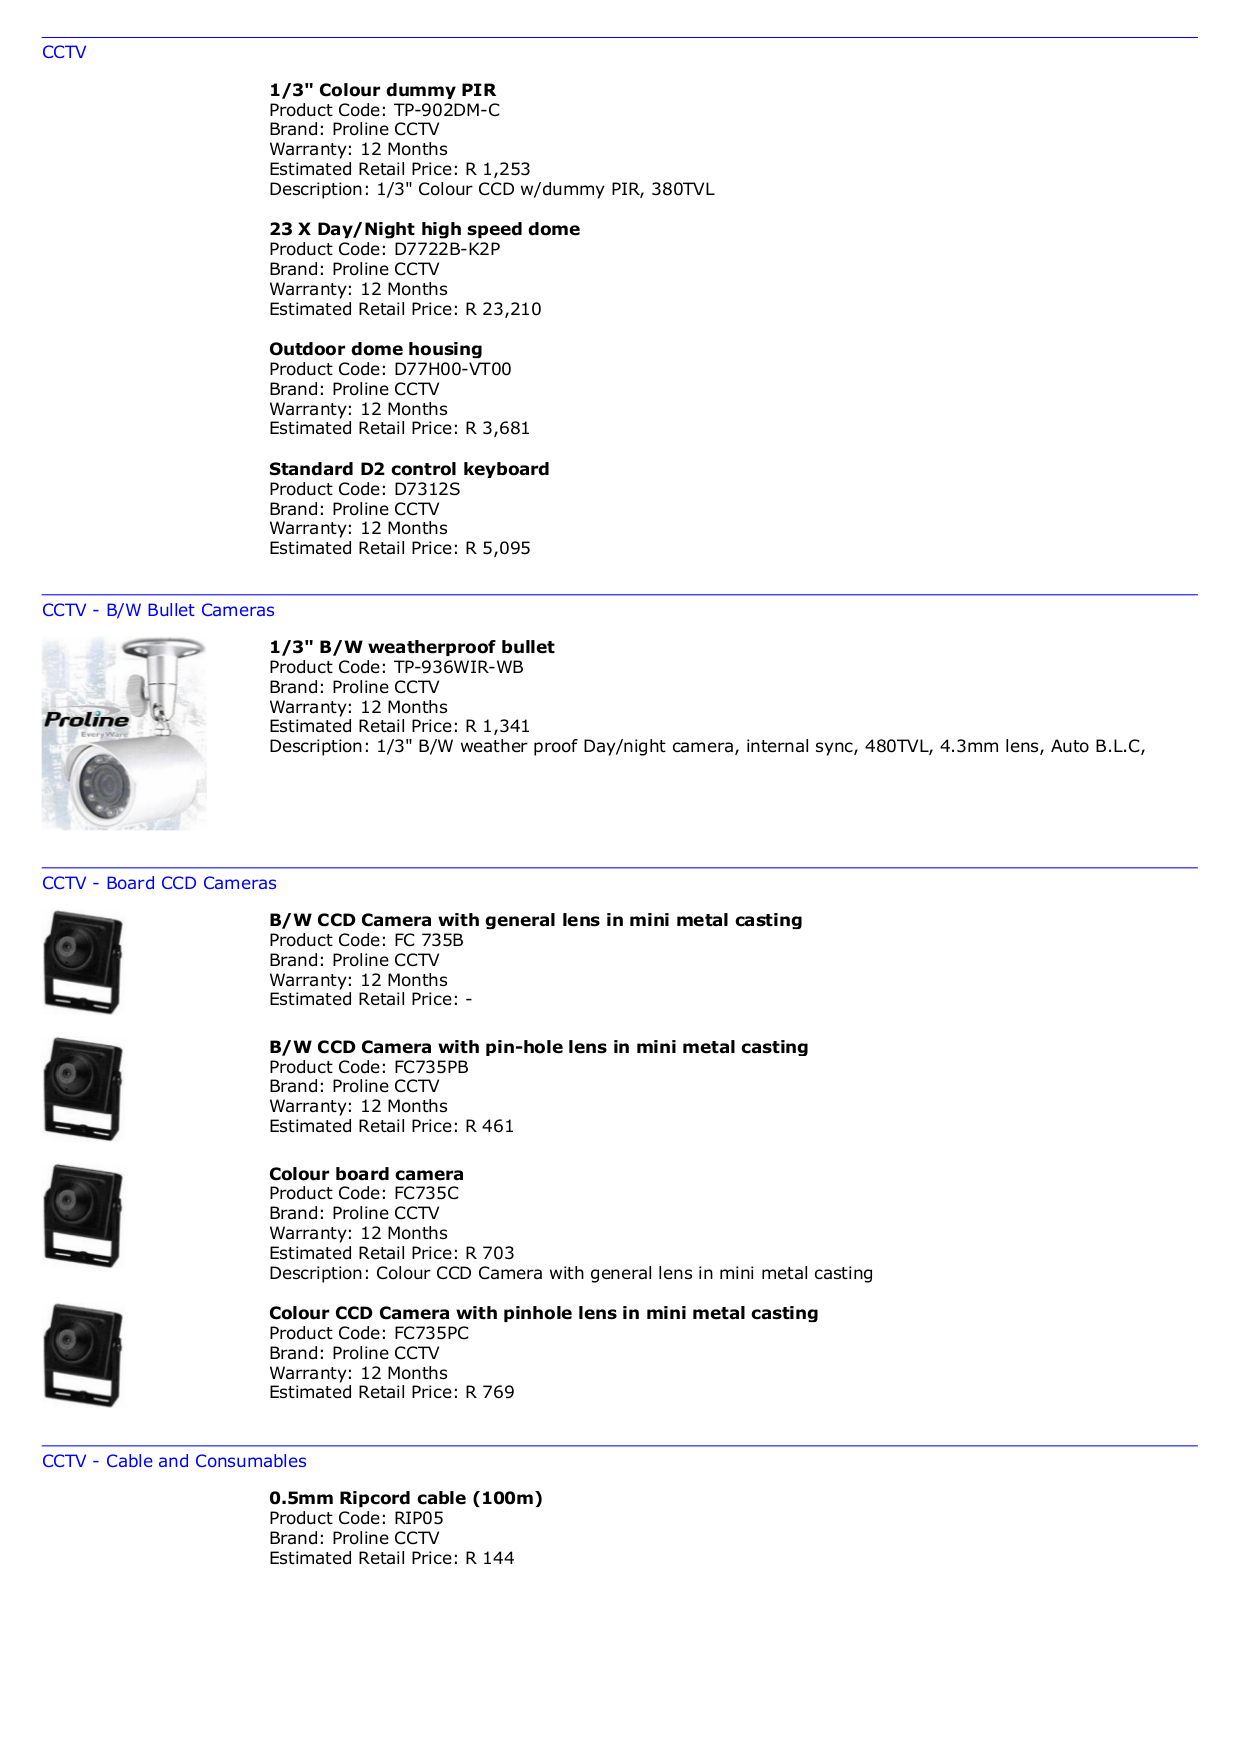 Download Free Pdf For Msi Ms 7095 Motherboard Other Manual Cctv Wiring Diagram